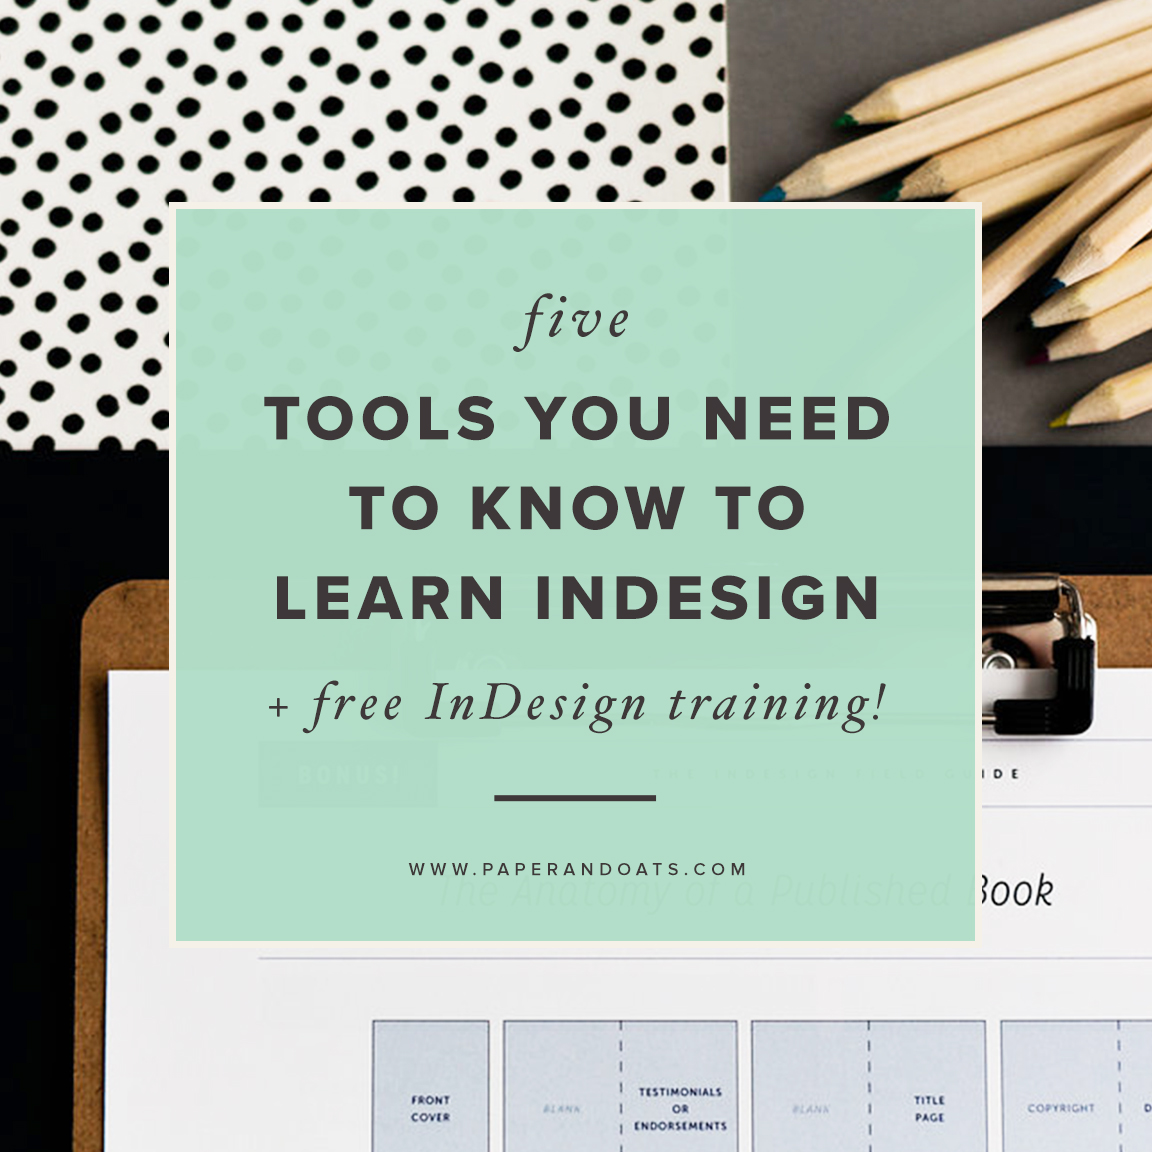 5 tools you need to know to learn Adobe InDesign – and free InDesign training! – www.paperandoats.com